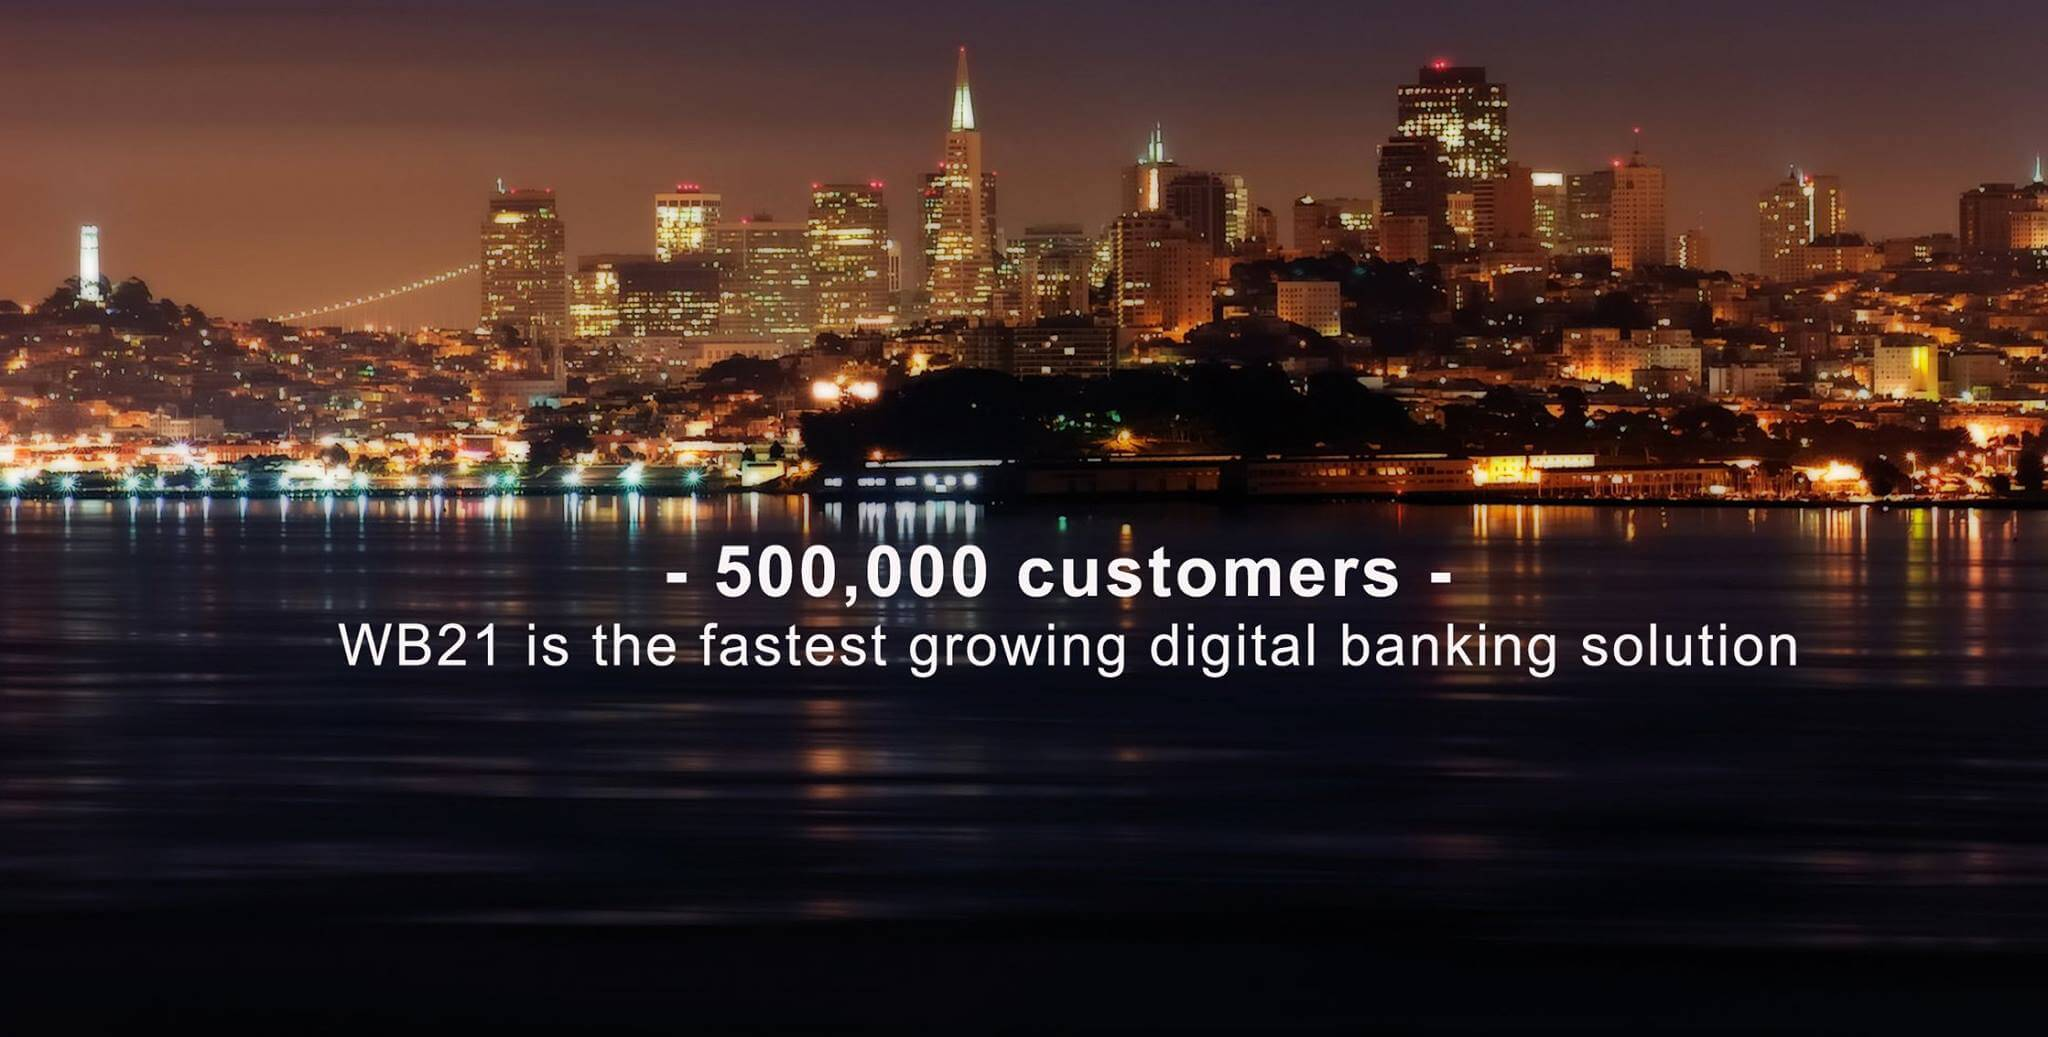 Over 500,000 customers - WB21 is the fastest growing digital banking solution in europe